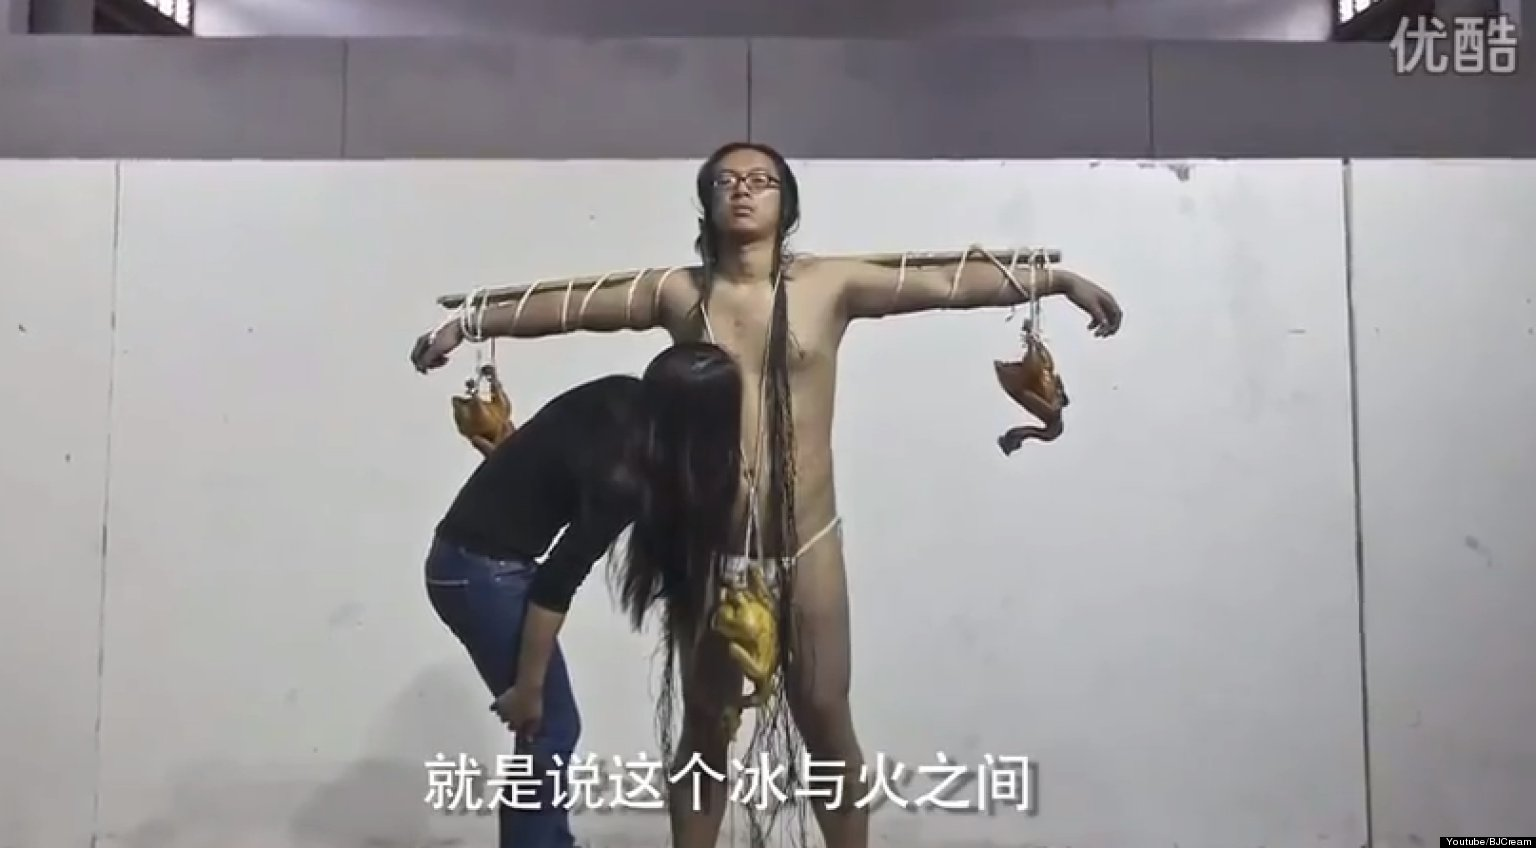 chinese artist kang yi receives hickeys as performance art nsfw video. Black Bedroom Furniture Sets. Home Design Ideas